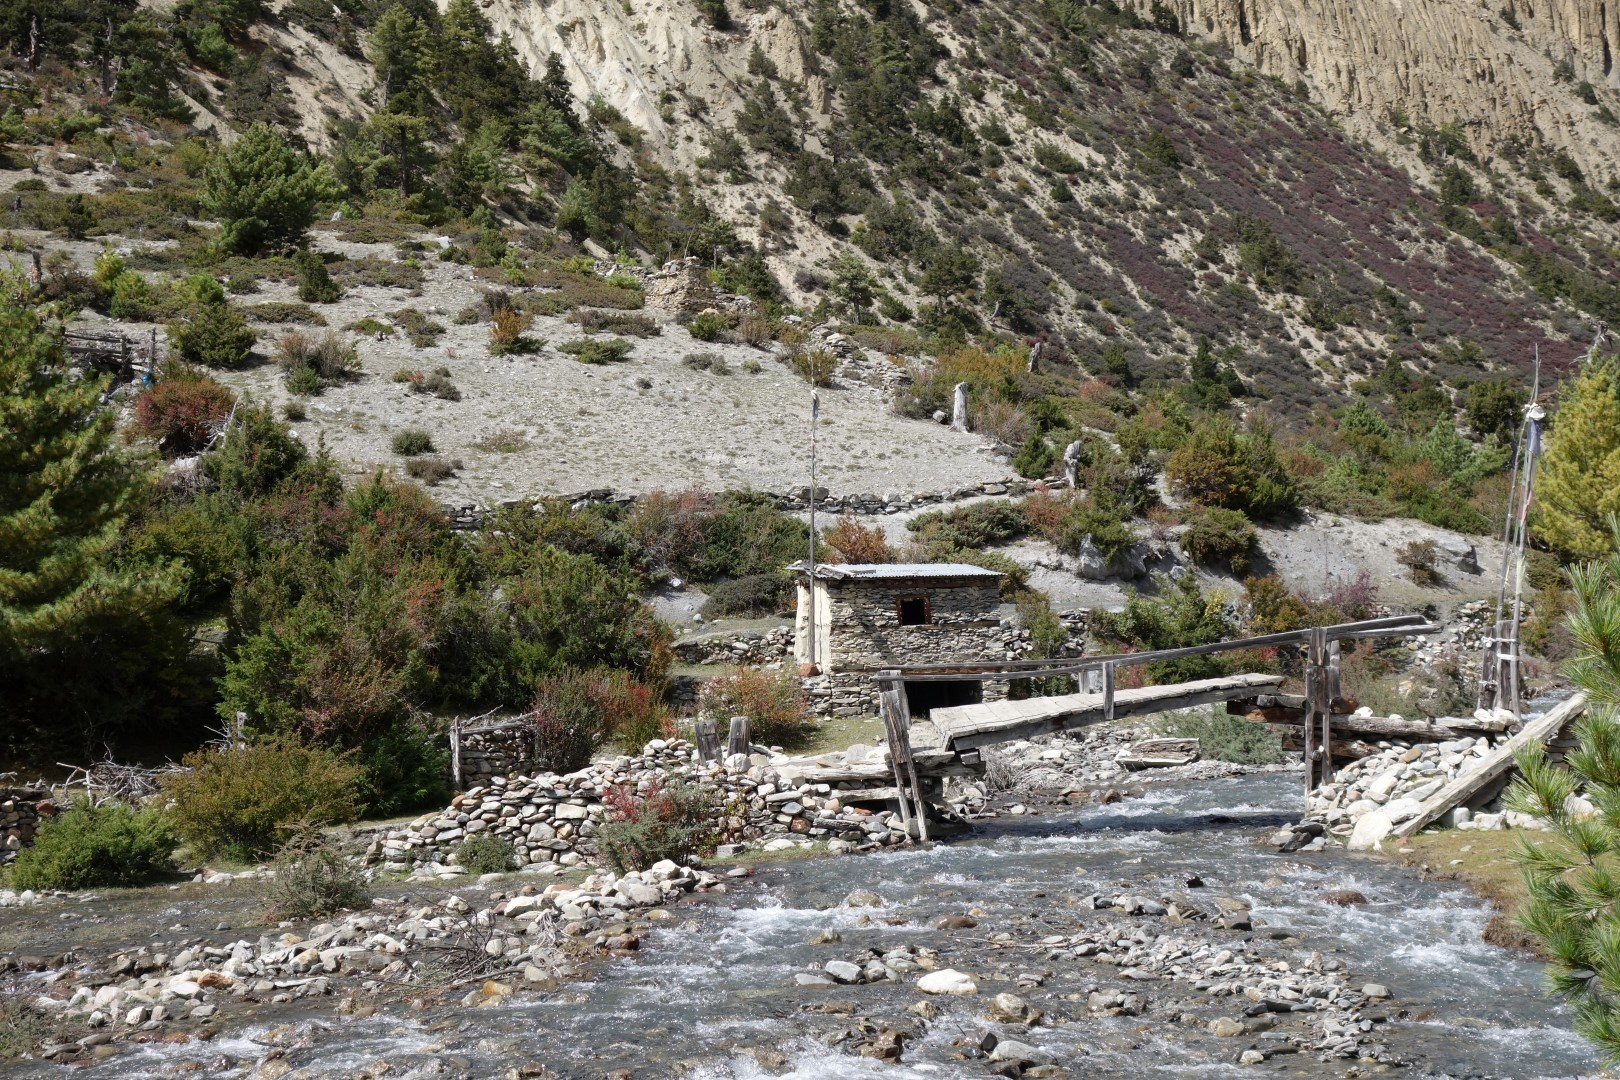 What looked like an abandoned village - Annapurna circuit route